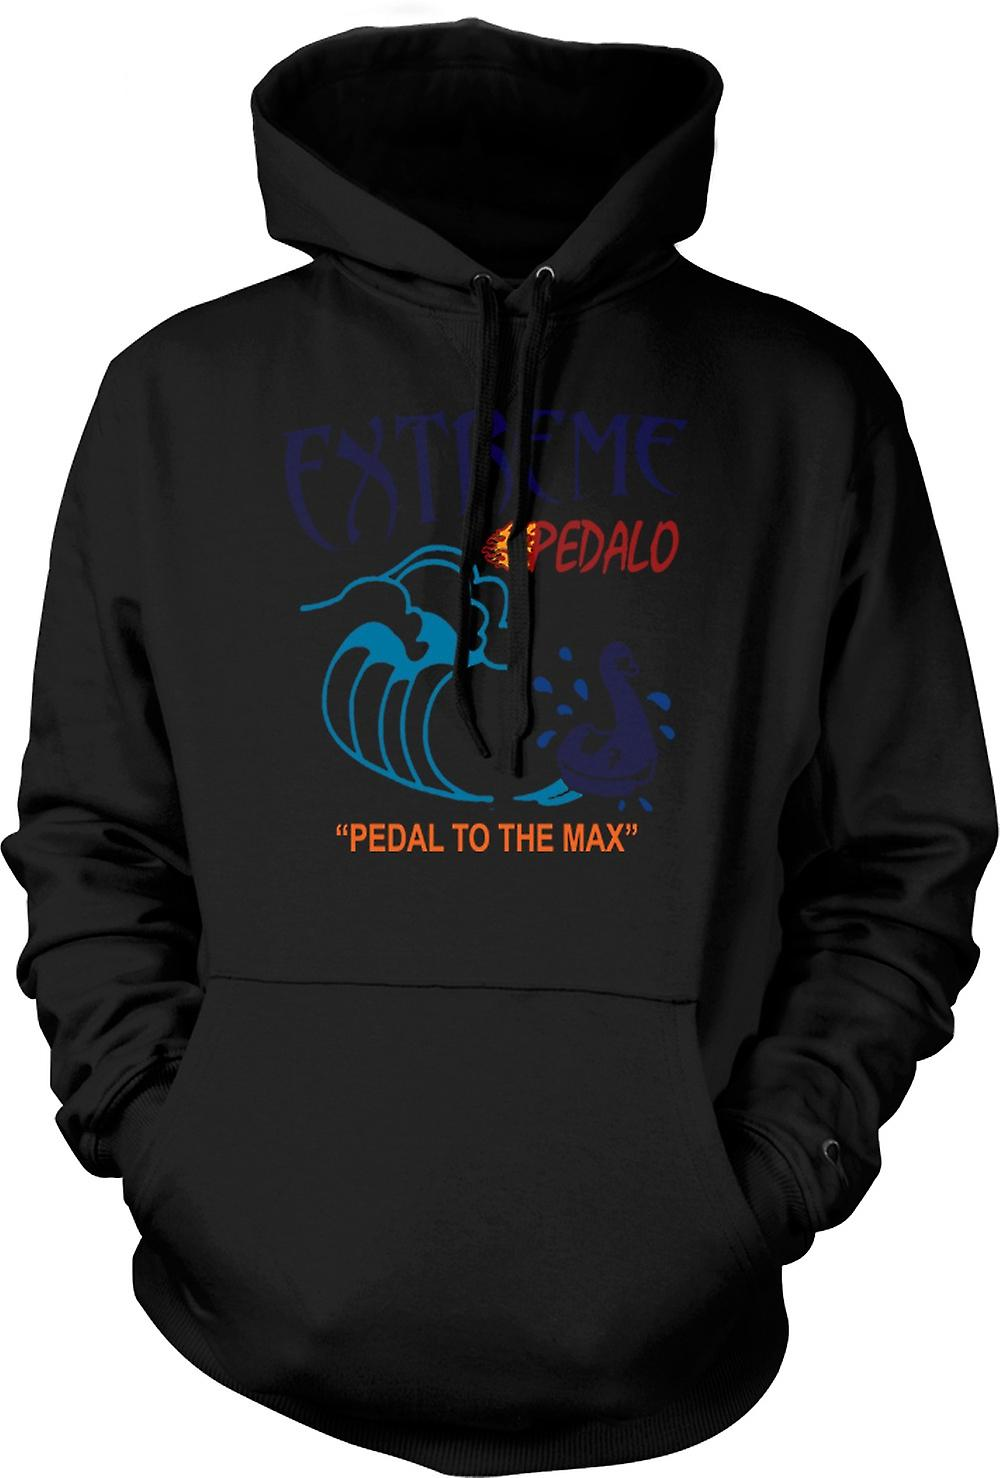 Mens Hoodie - Extreme Pedelo - Funny